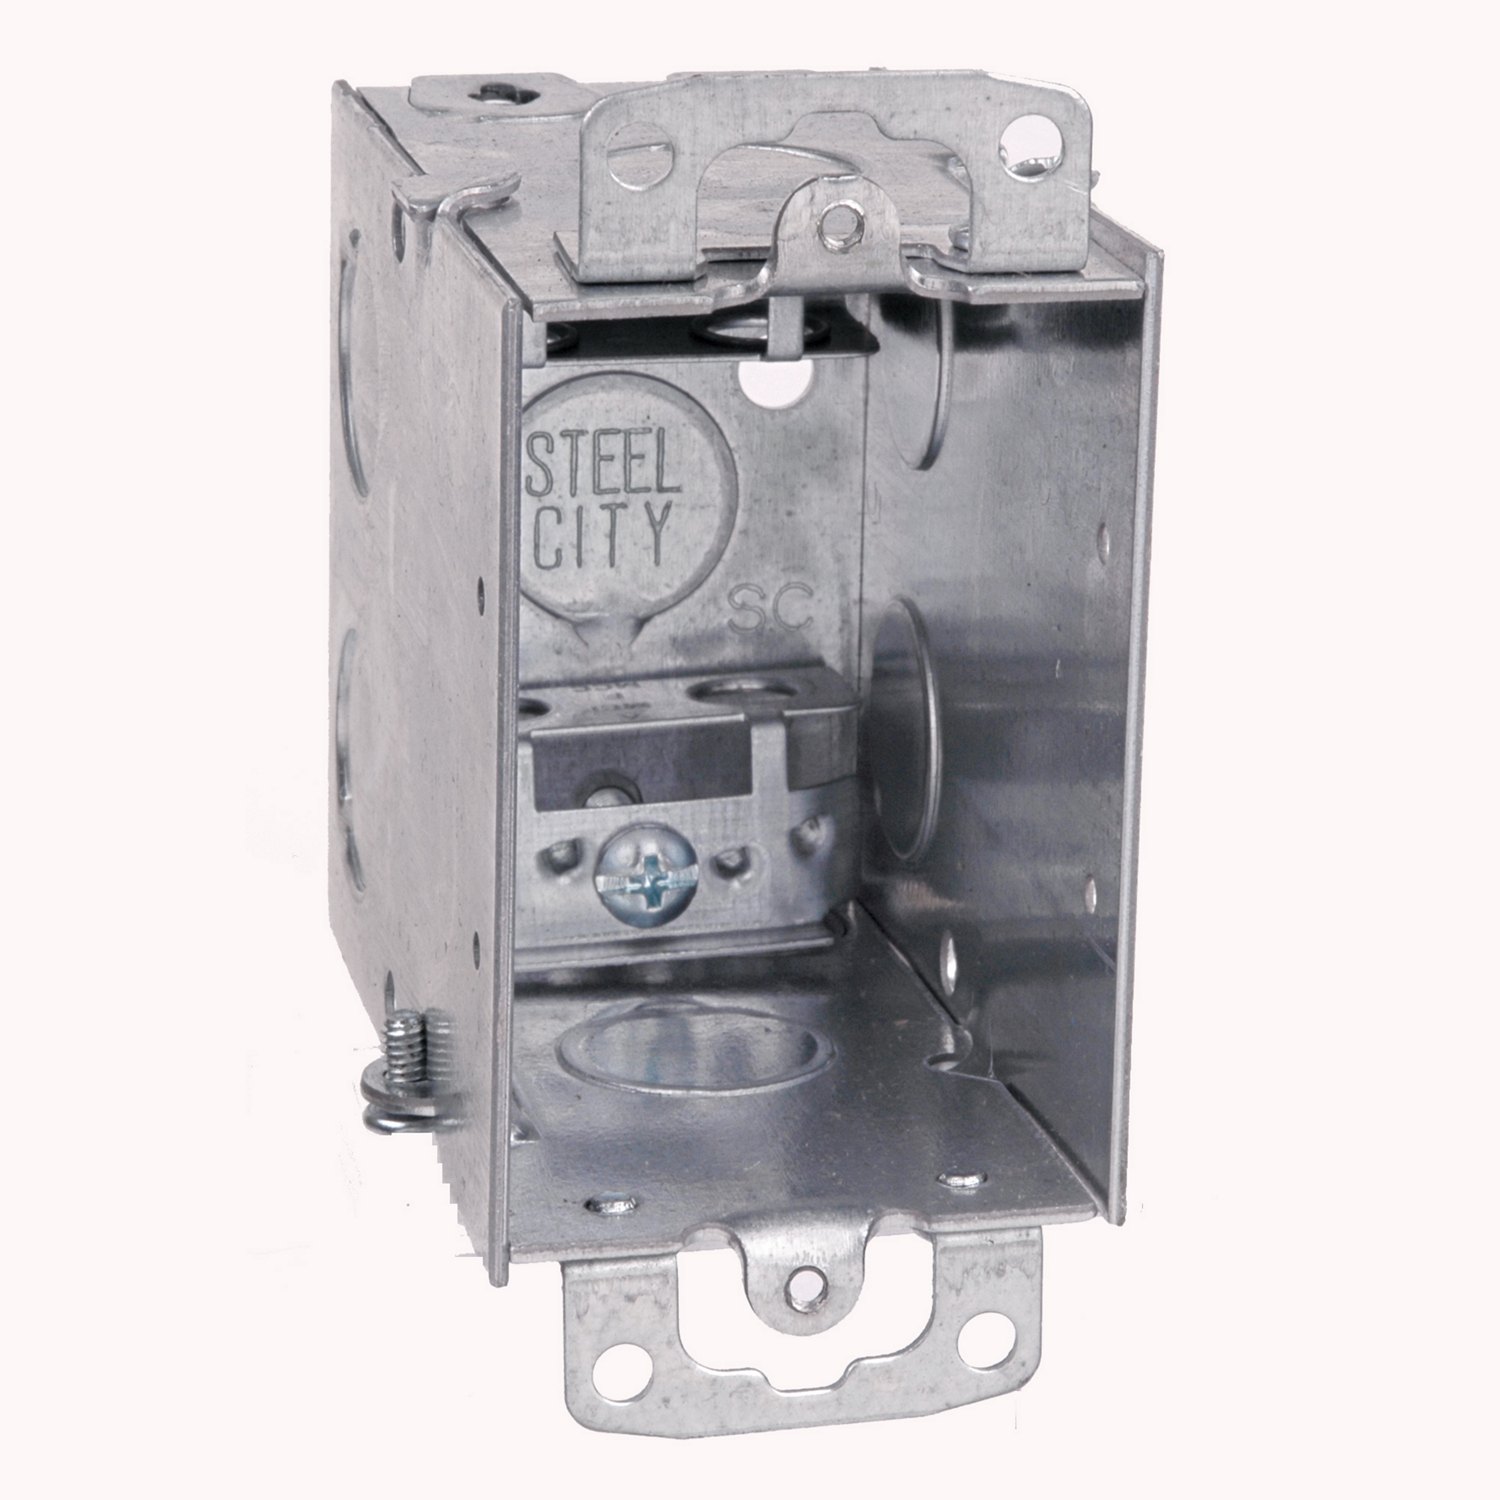 Steel City® Switch Box, Gangable, 1 Outlet, 1 Gang, 6 Knockouts, 1/2 in Knockout, Knockout Cable Entry, Threaded Mounting, 18 cu-in Capacity, Steel, Electro-Galvanized, Silver, 3 in H x 2 in W x 3-1/2 in D Dimensions